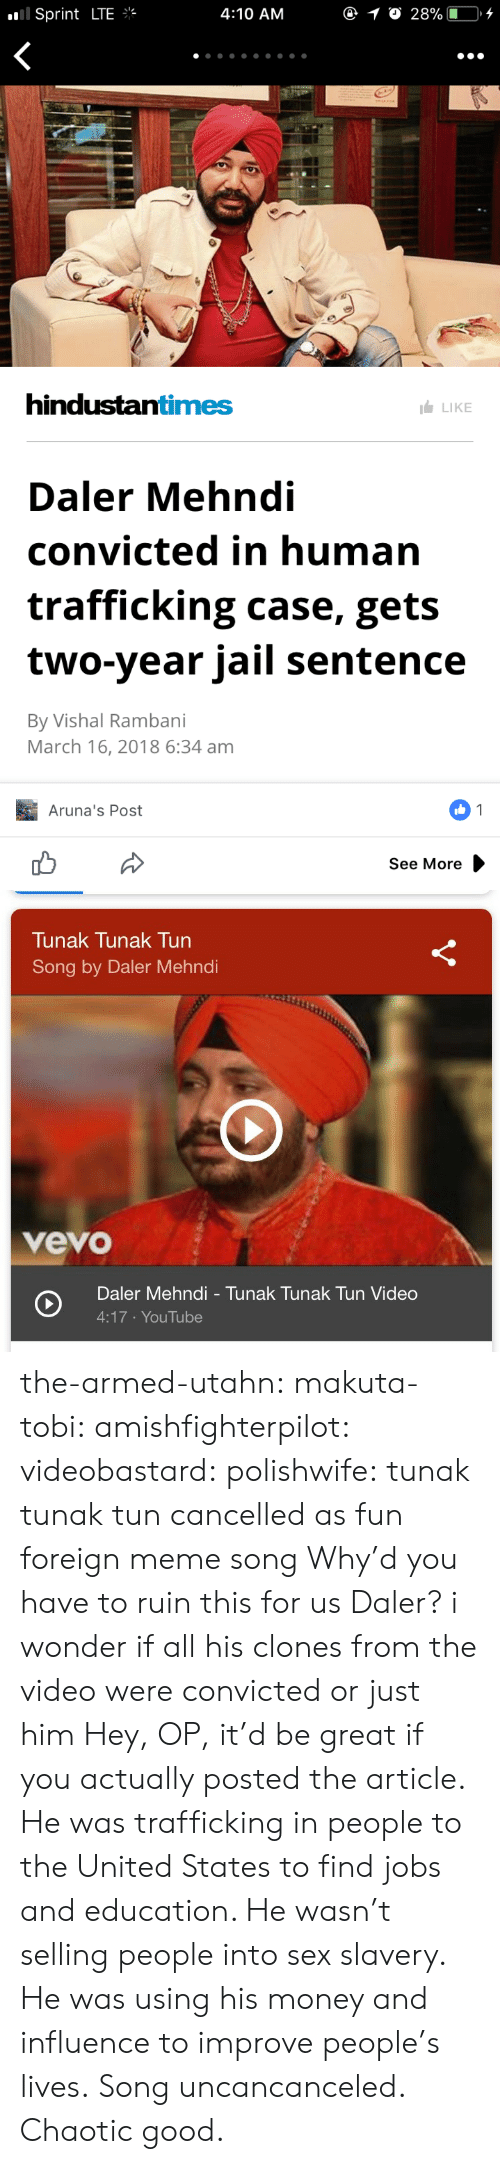 tobi: .'Il Sprint LTE  4:10 ANM  hindustantimes  LIKE  Daler Mehndi  convicted in human  trafficking case, gets  two-year jail sentence  By Vishal Rambani  March 16, 2018 6:34 am  Aruna's Post  See More   Tunak Tunak Tun  Song by Daler Mehndi  vevo  Daler Mehndi - Tunak Tunak Tun Video  4:17 YouTube the-armed-utahn: makuta-tobi:  amishfighterpilot:  videobastard:  polishwife: tunak tunak tun cancelled as fun foreign meme song Why'd you have to ruin this for us Daler?  i wonder if all his clones from the video were convicted or just him   Hey, OP, it'd be great if you actually posted the article. He was trafficking in people to the United States to find jobs and education. He wasn't selling people into sex slavery. He was using his money and influence to improve people's lives. Song uncancanceled.   Chaotic good.